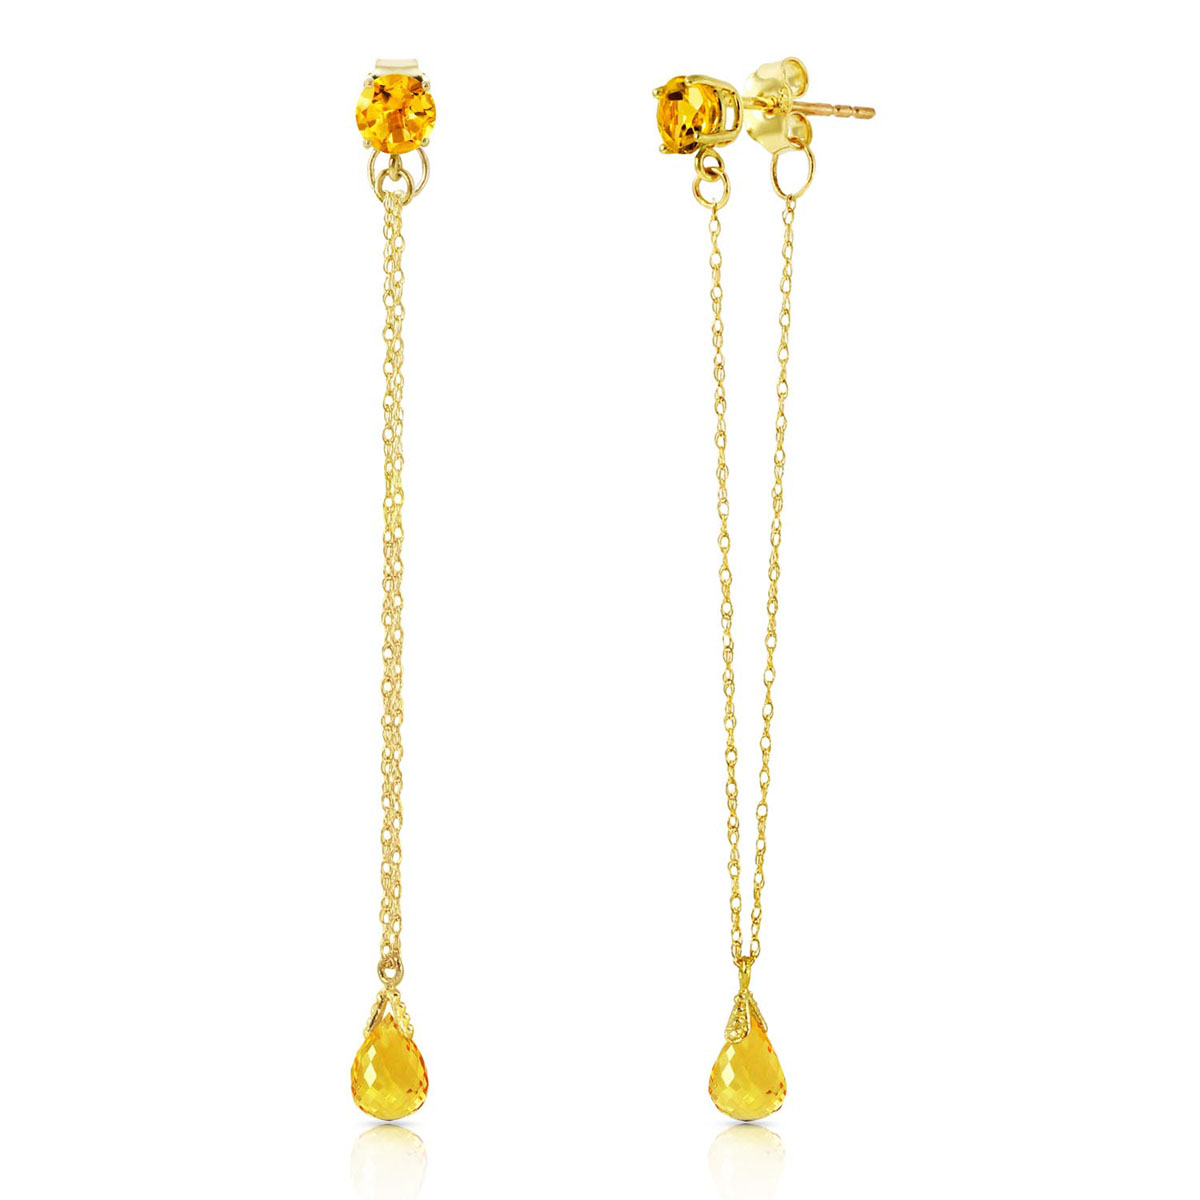 Citrine Monte Carlo Drop Earrings 1.15 ctw in 9ct Gold